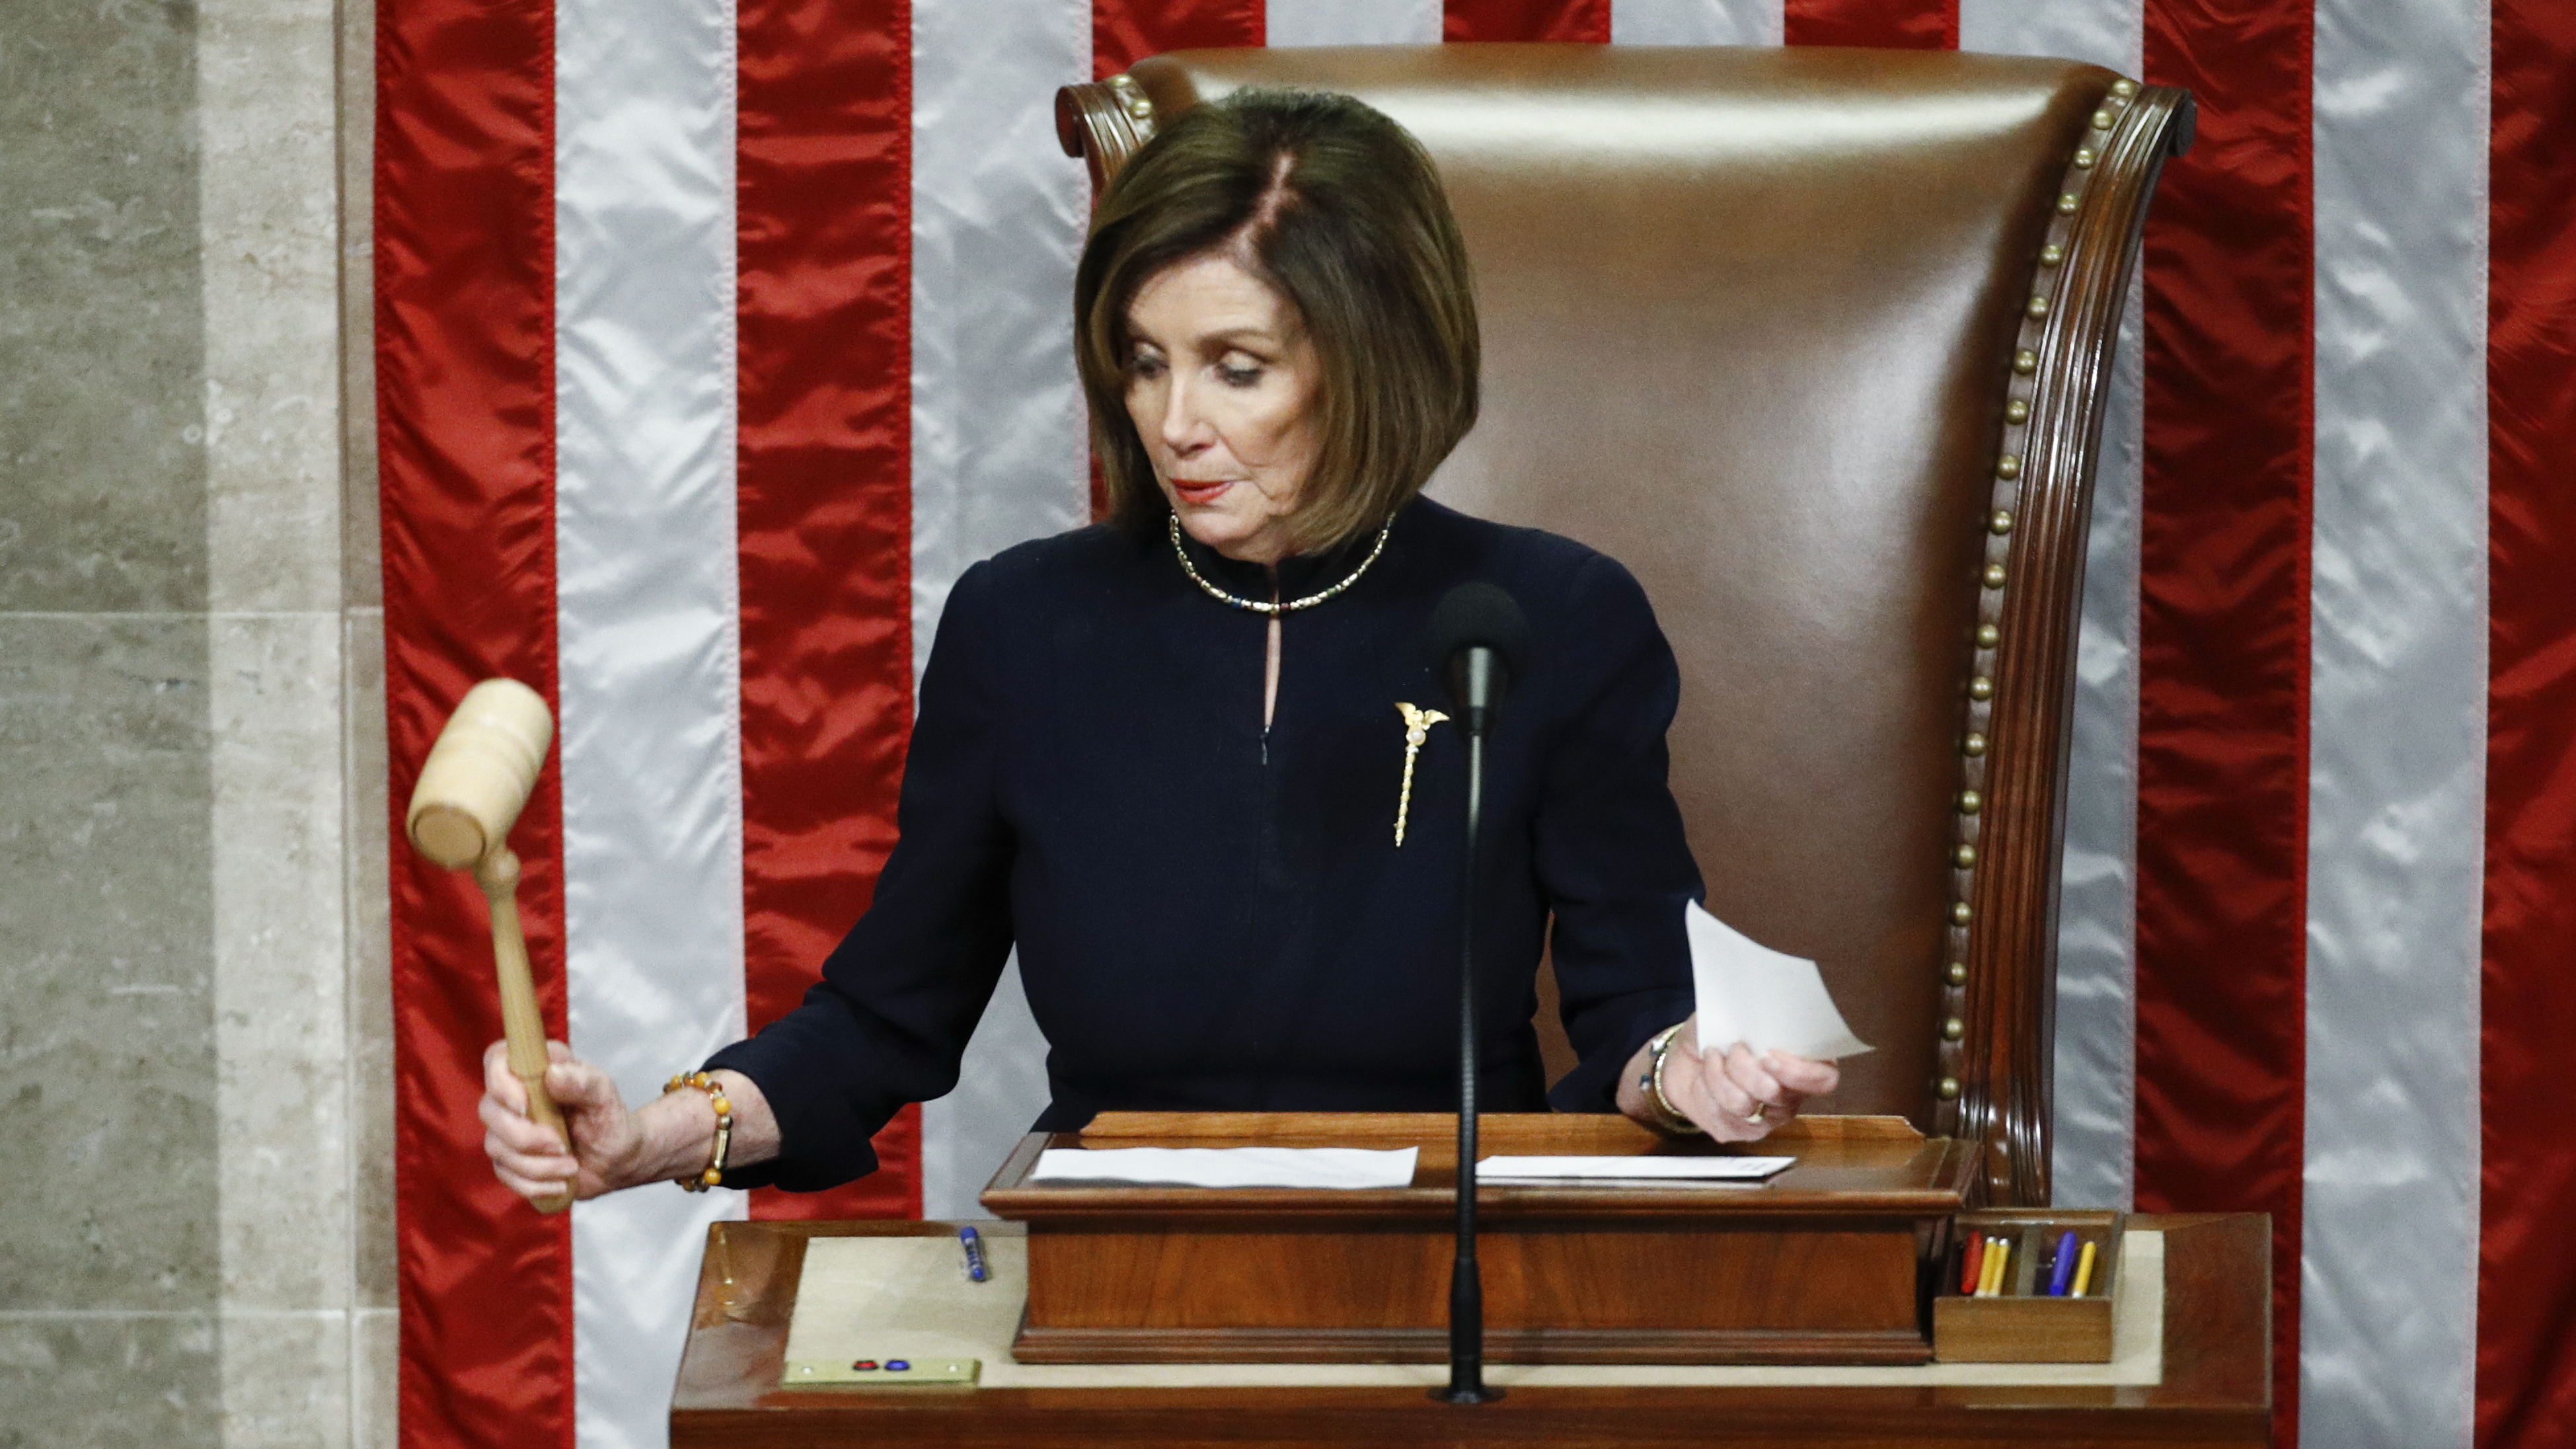 House Speaker Nancy Pelosi of California strikes the gavel after announcing the passage of article II of impeachment against President Trump on Wednesday.